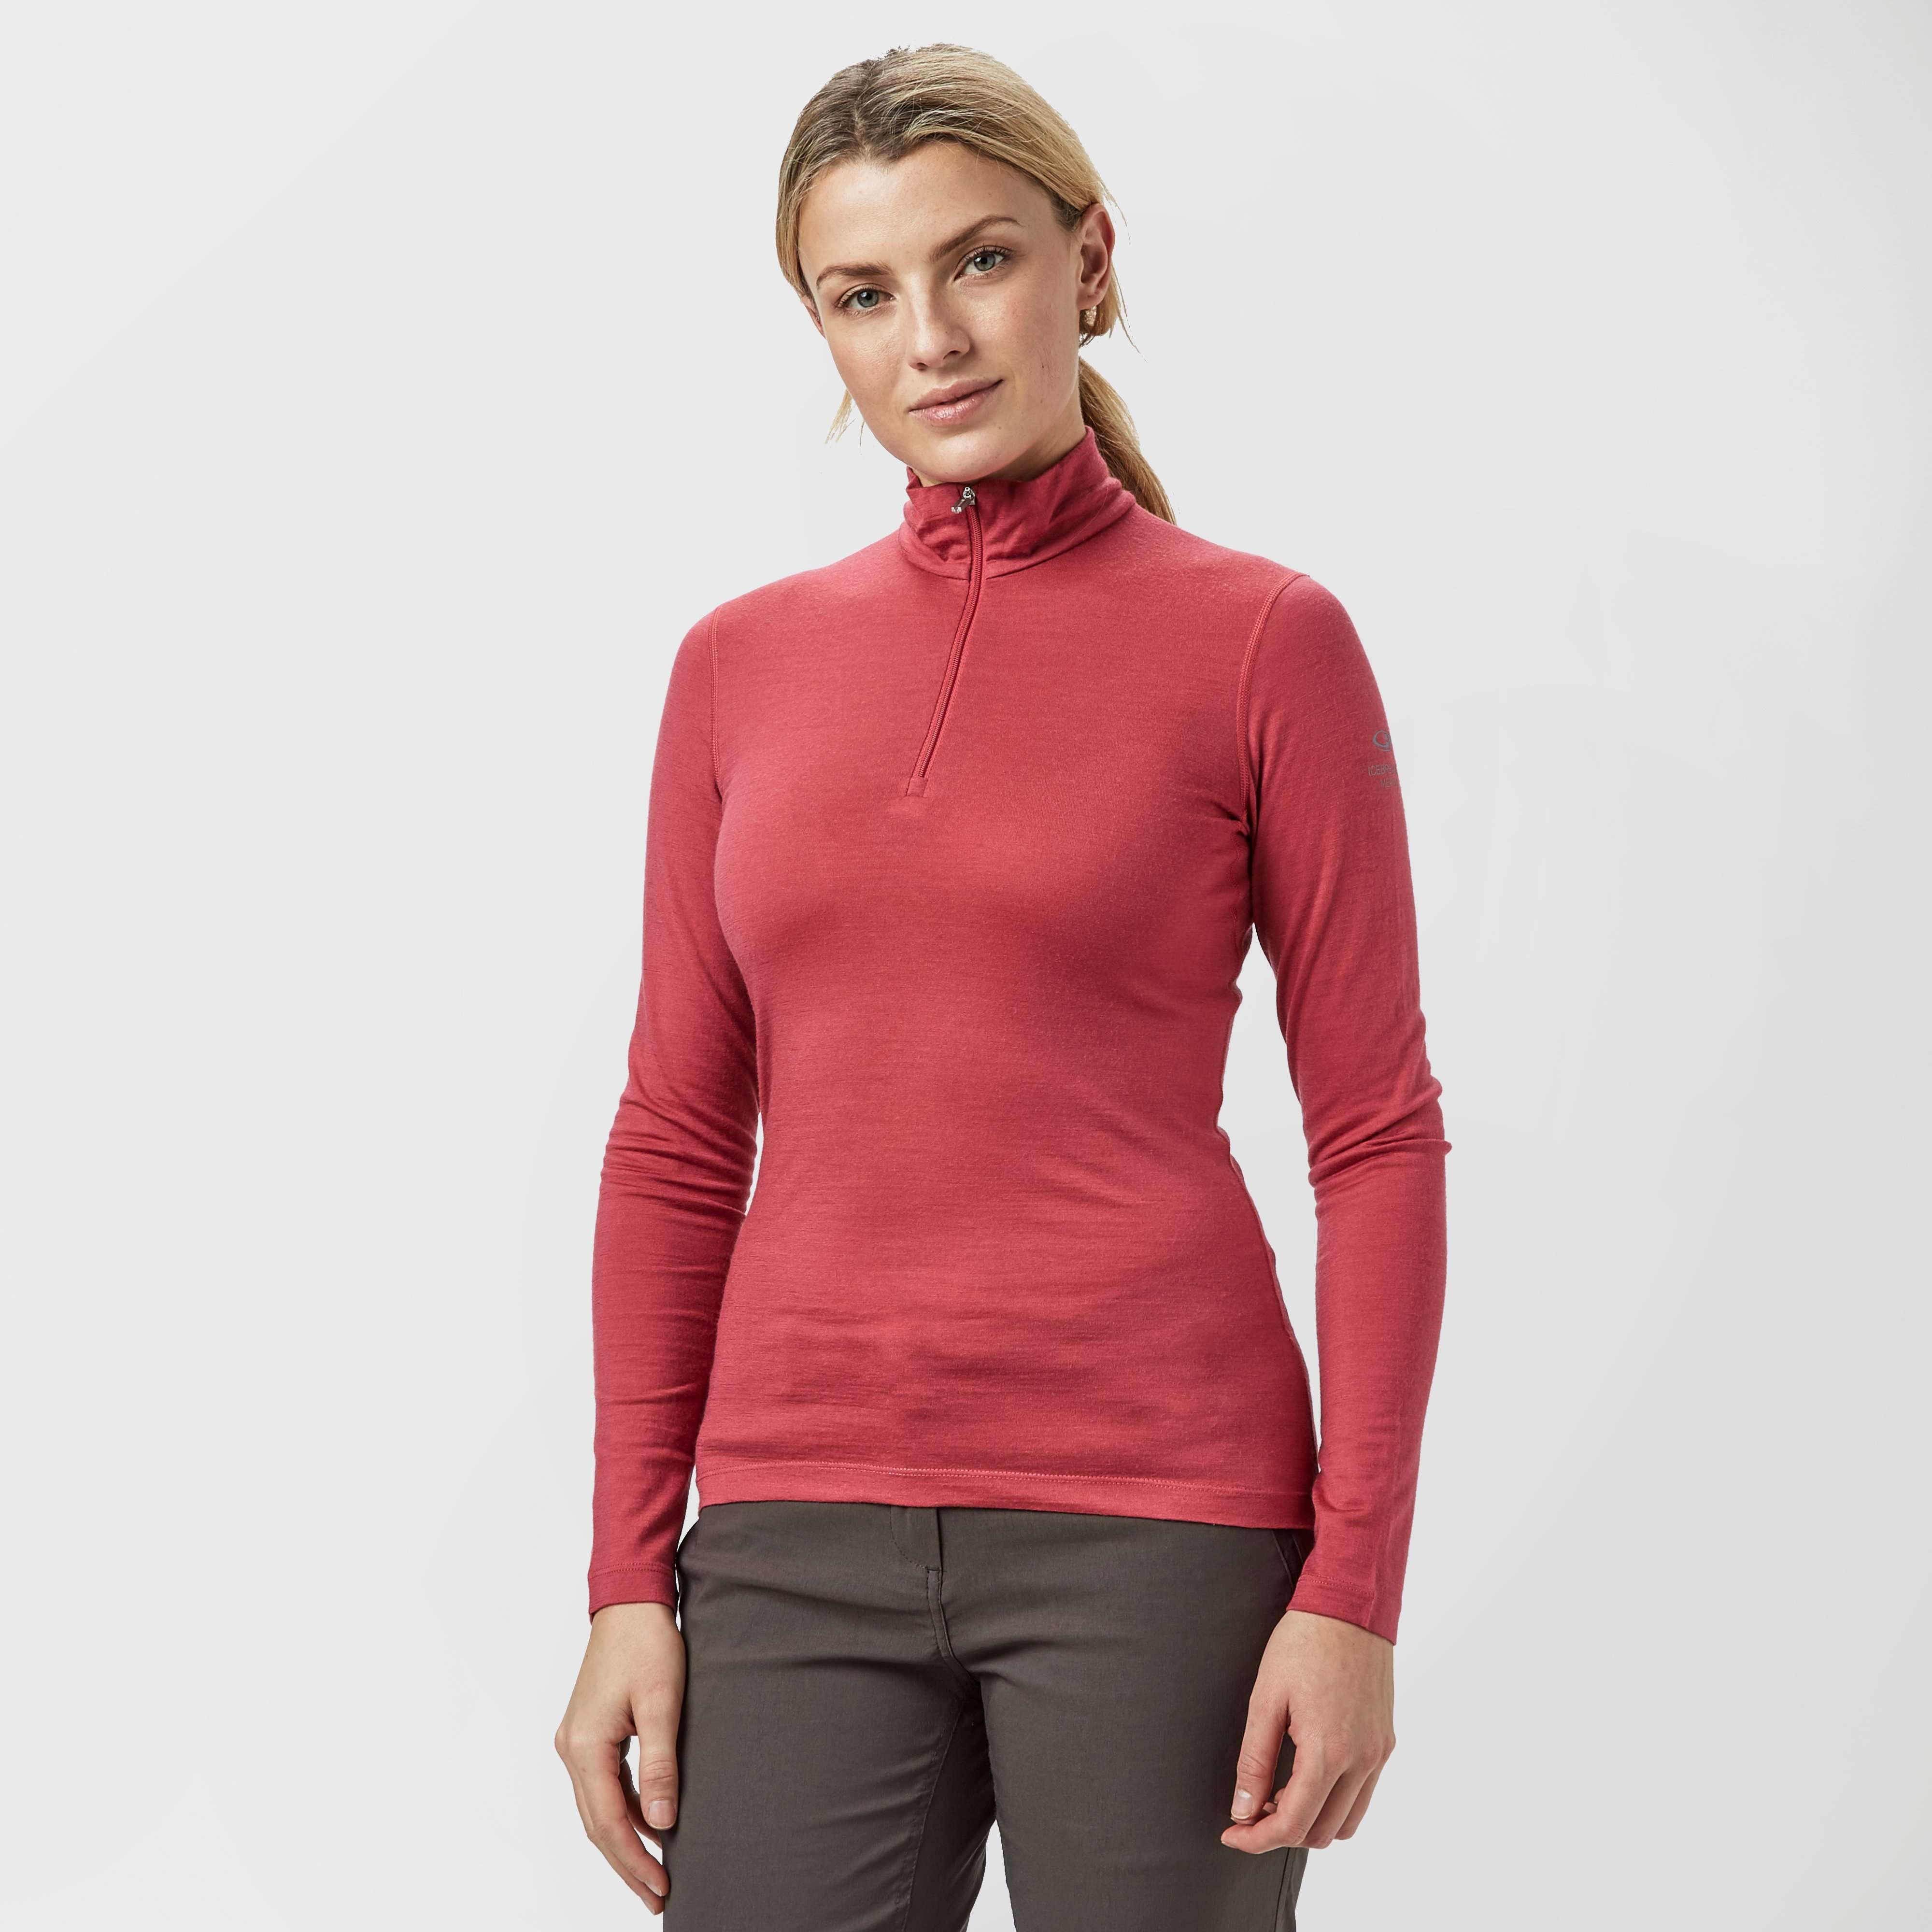 ICEBREAKER Women's Oasis Half-Zip Baselayer